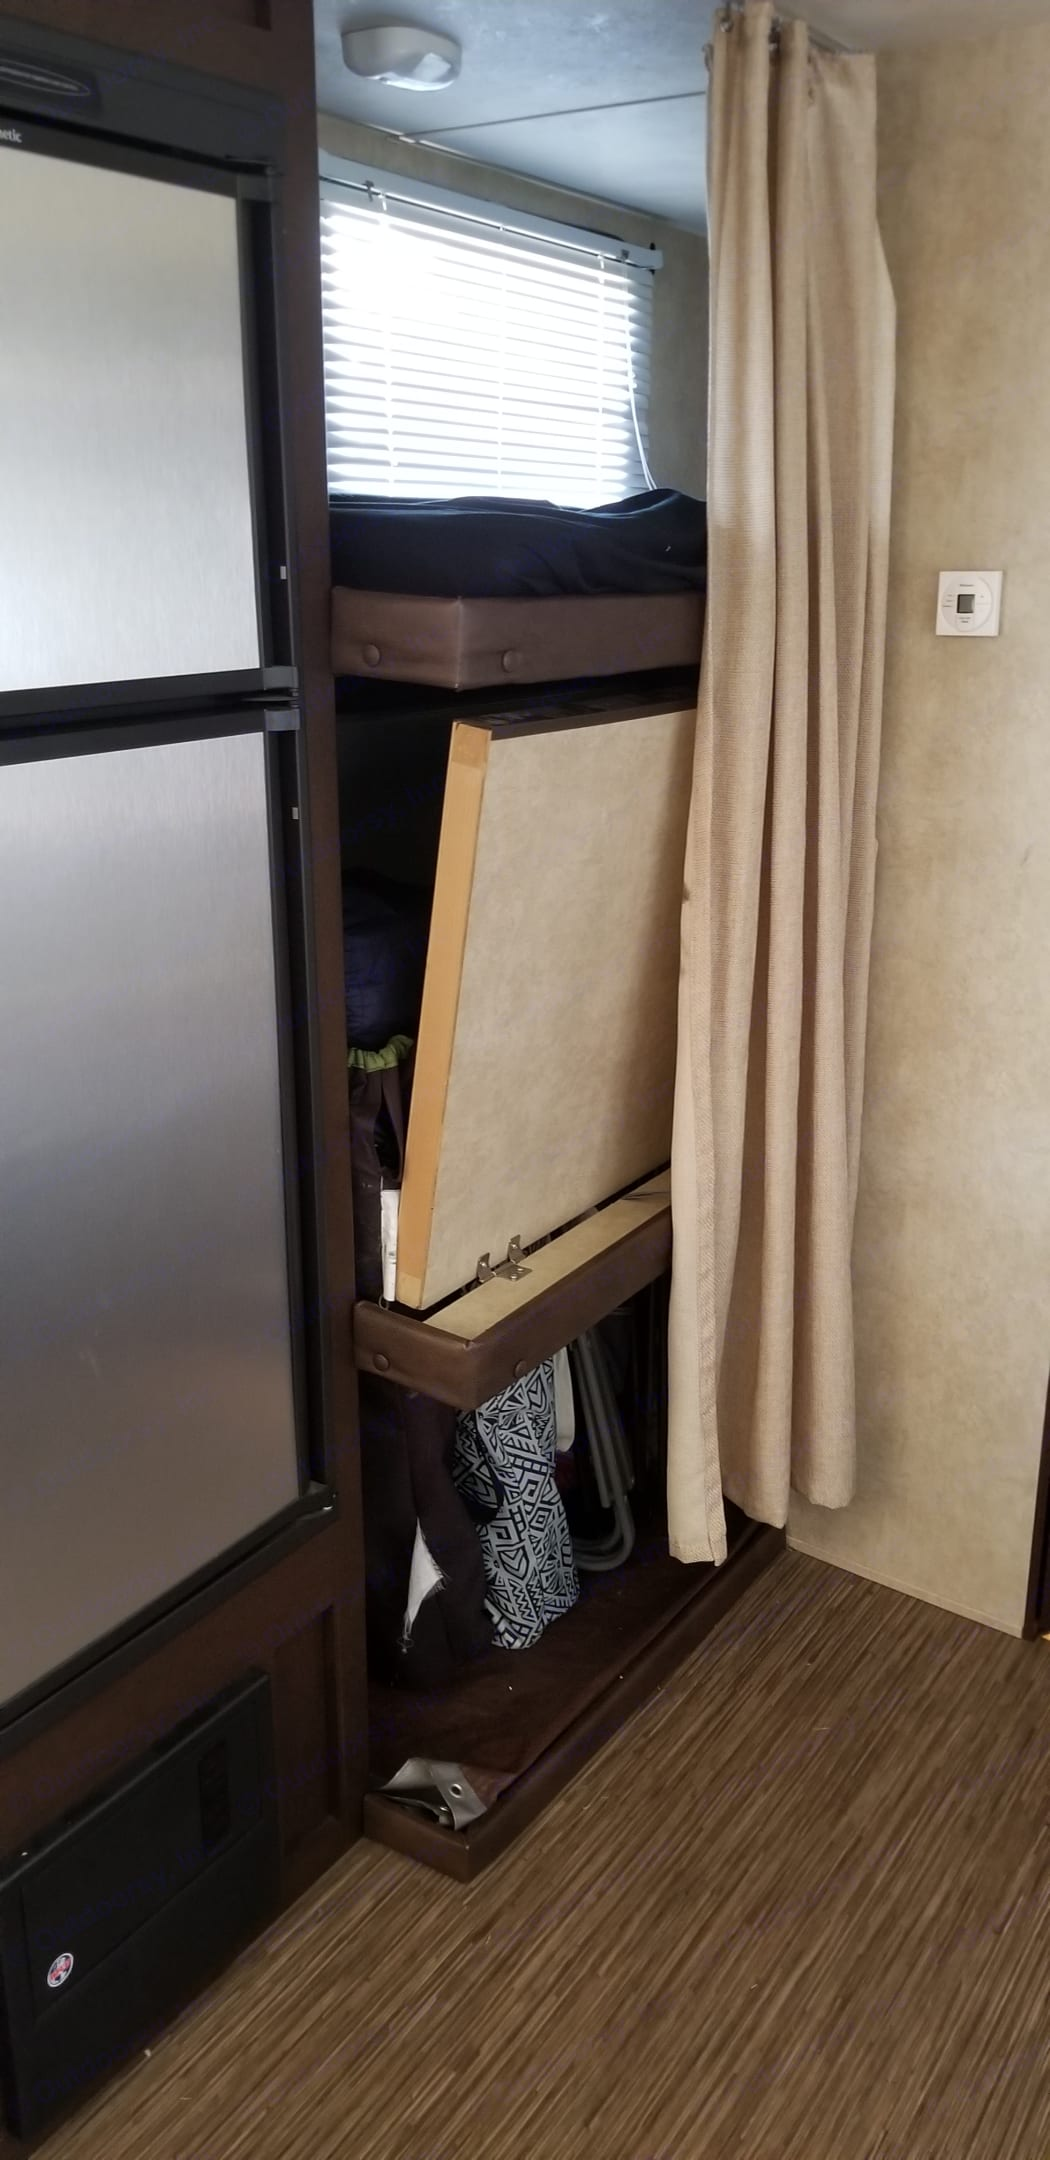 3 bunk beds pictured or used for storage. Forest River Evo 2014